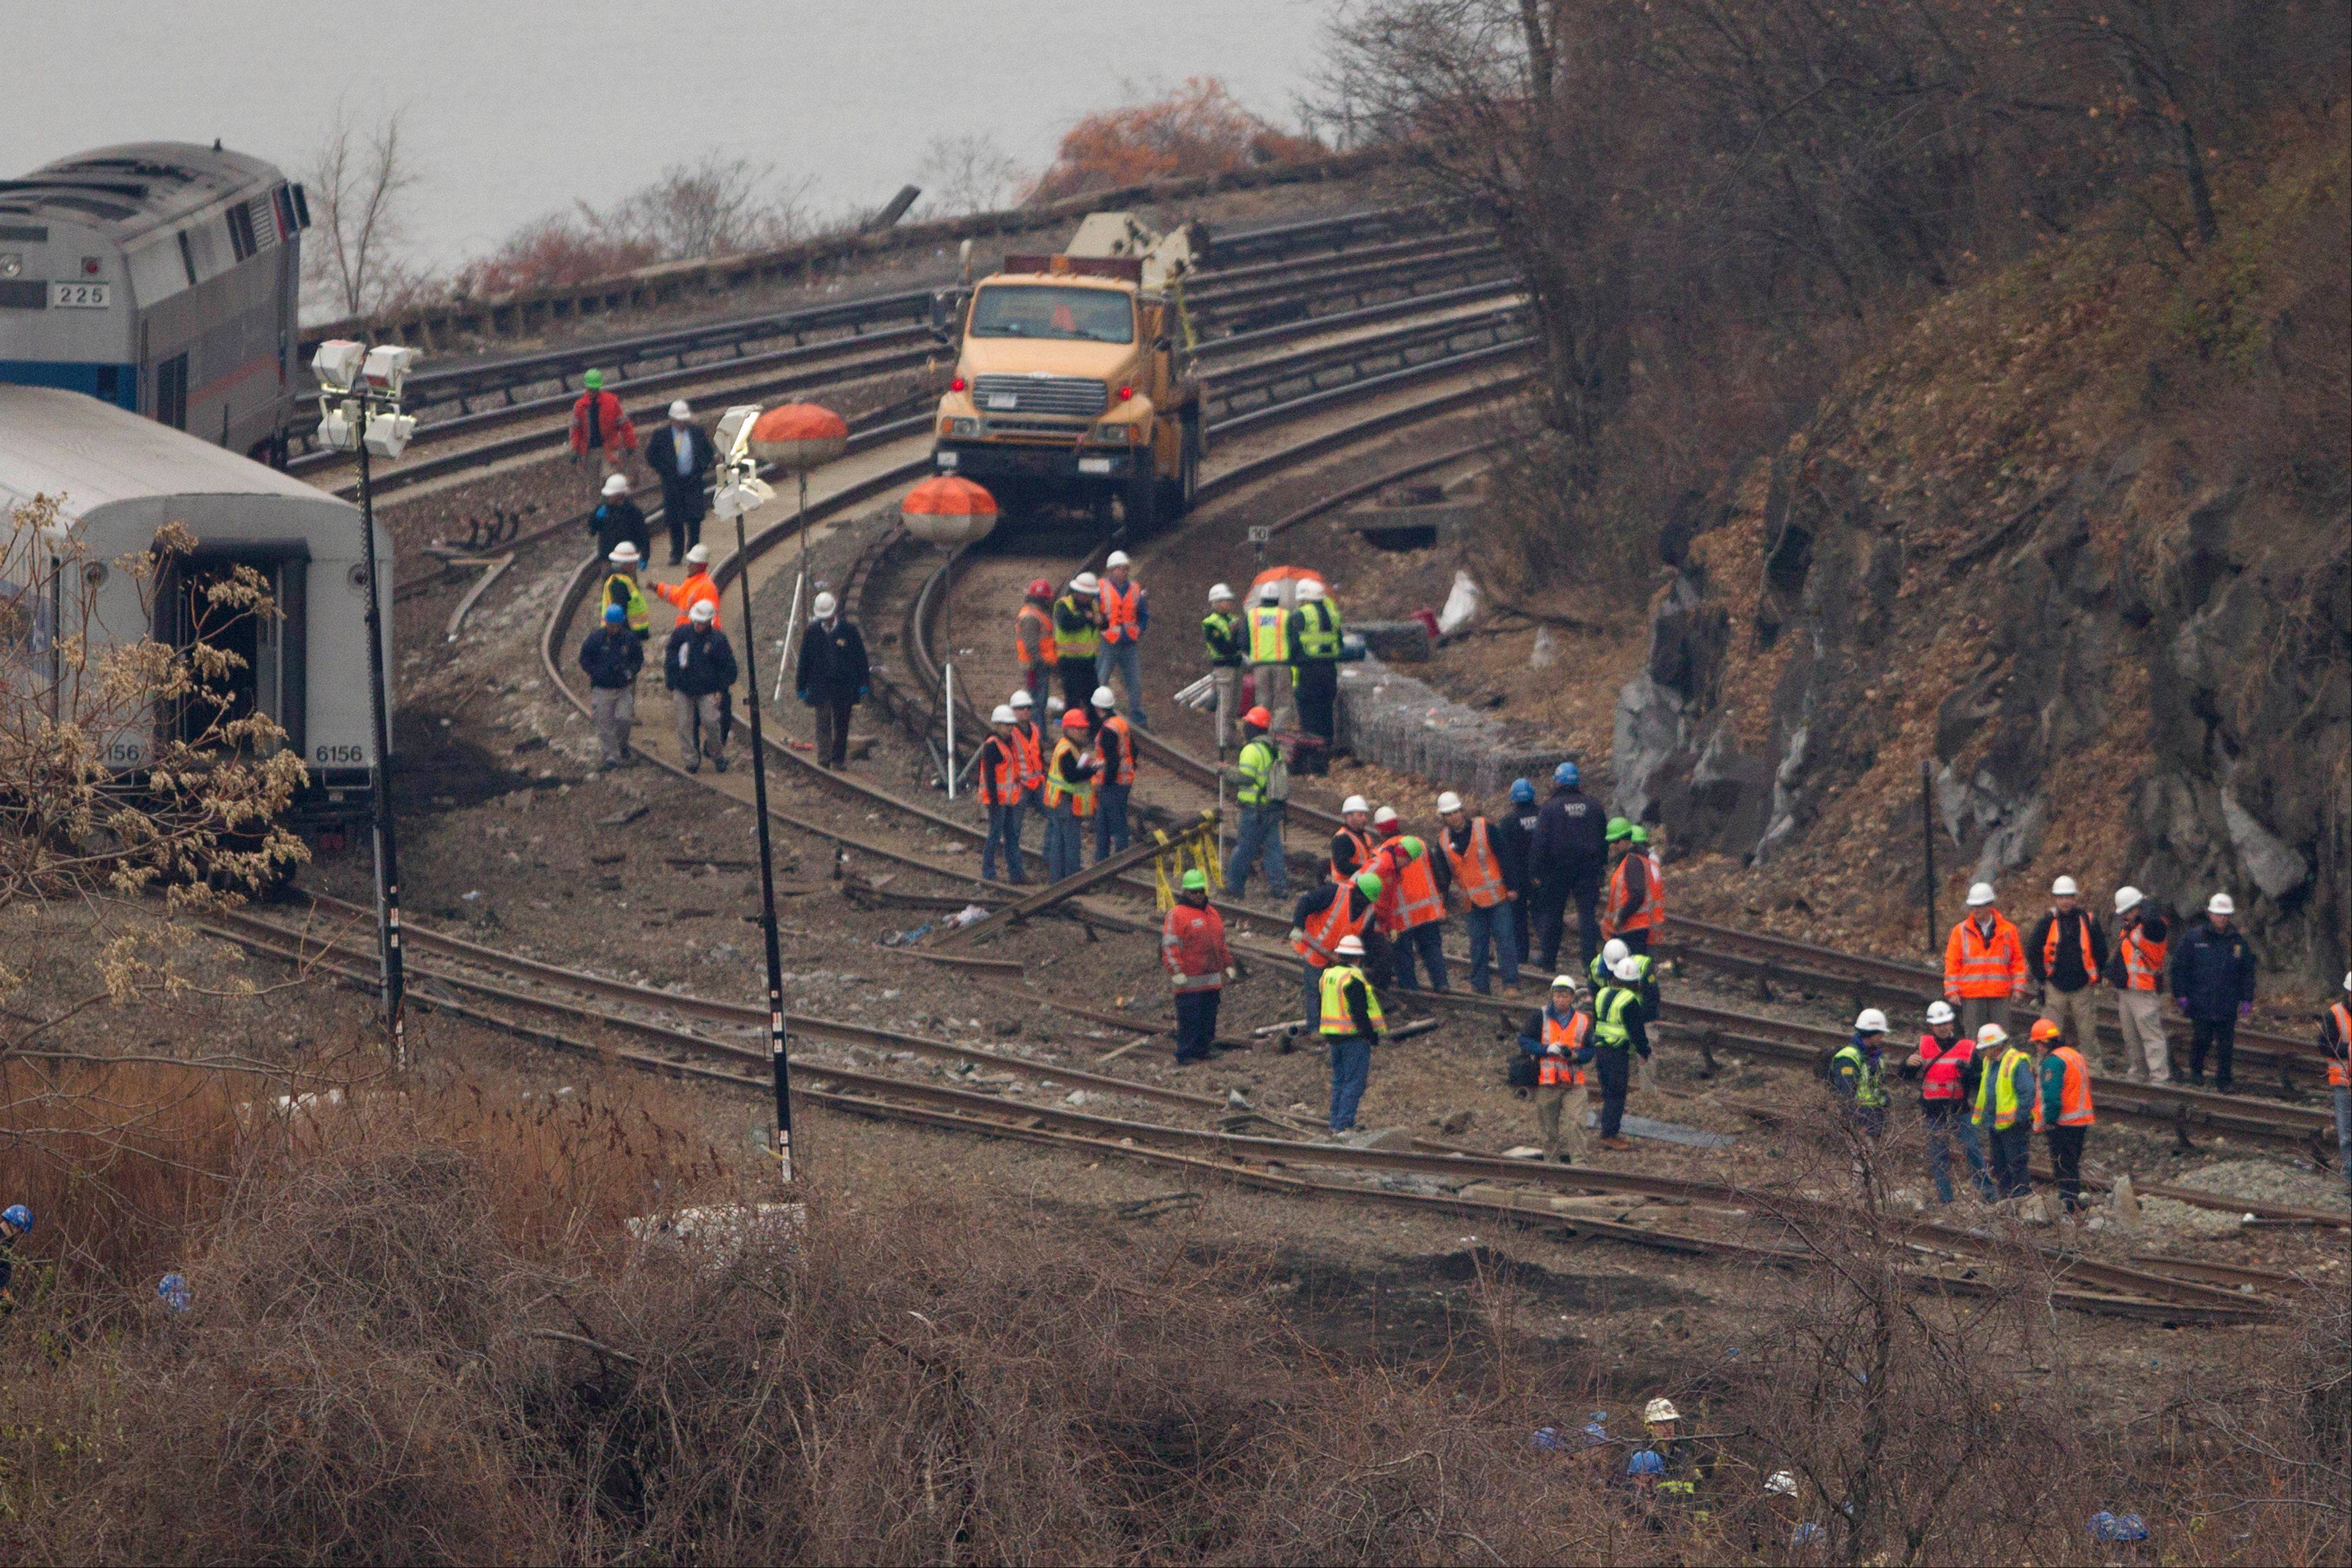 Daily Herald File PhotoA tragic commuter train crash that killed four people Dec. 1 in the Bronx is making the 2015 deadline to install a safety system unavoidable, Metra officials think.